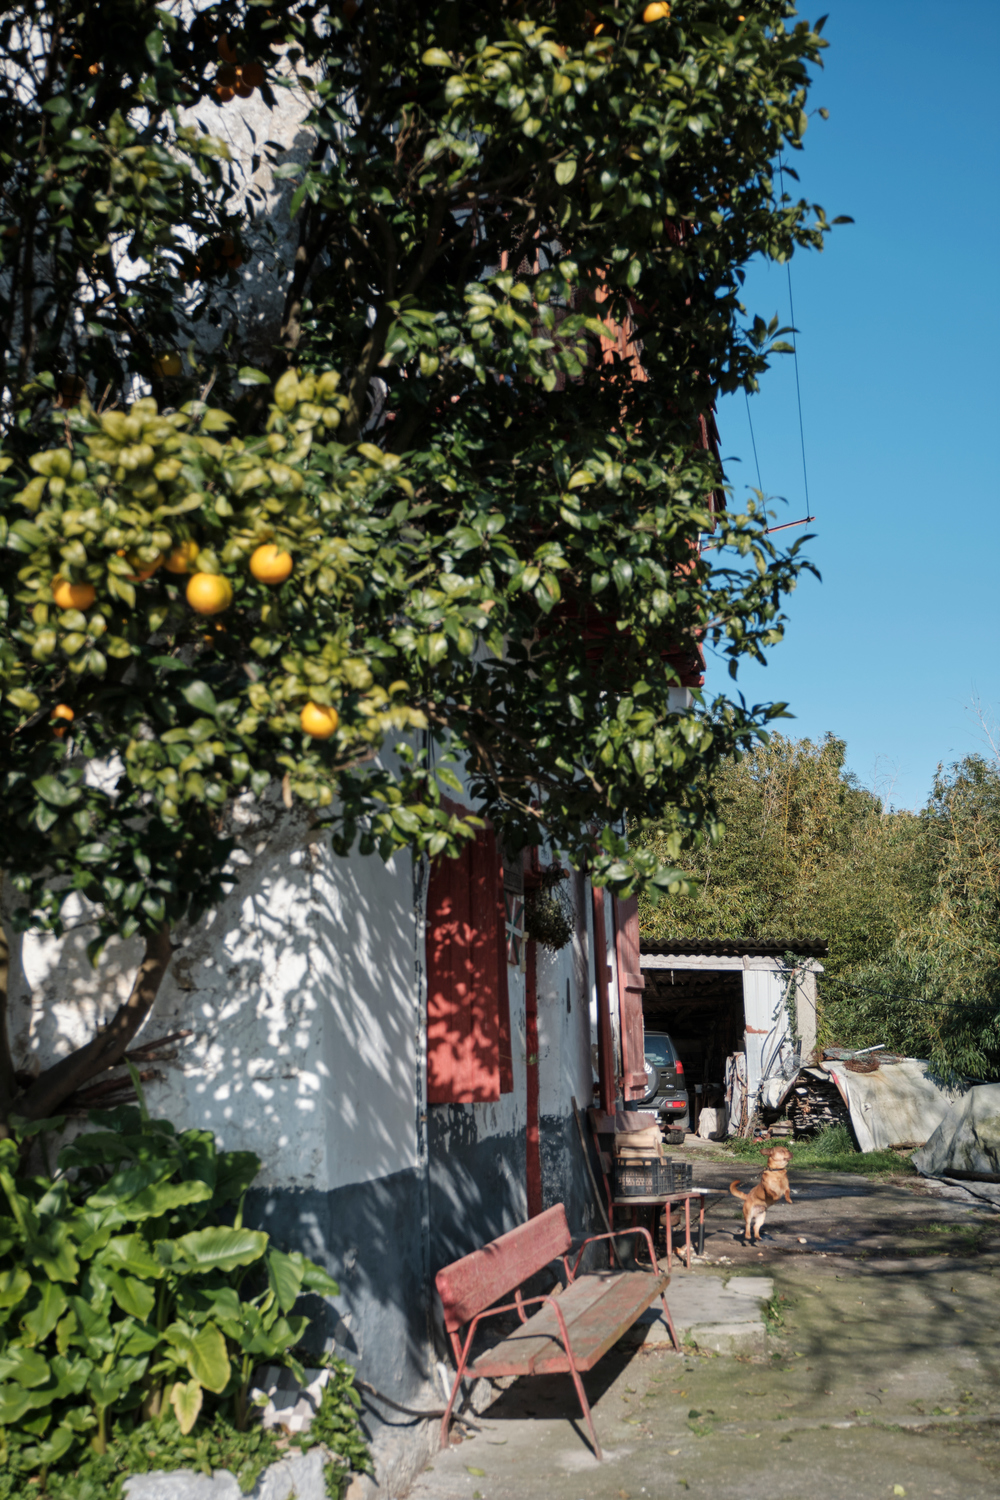 An orange tree next to a house with a tied up dog, a seat and a parked car.